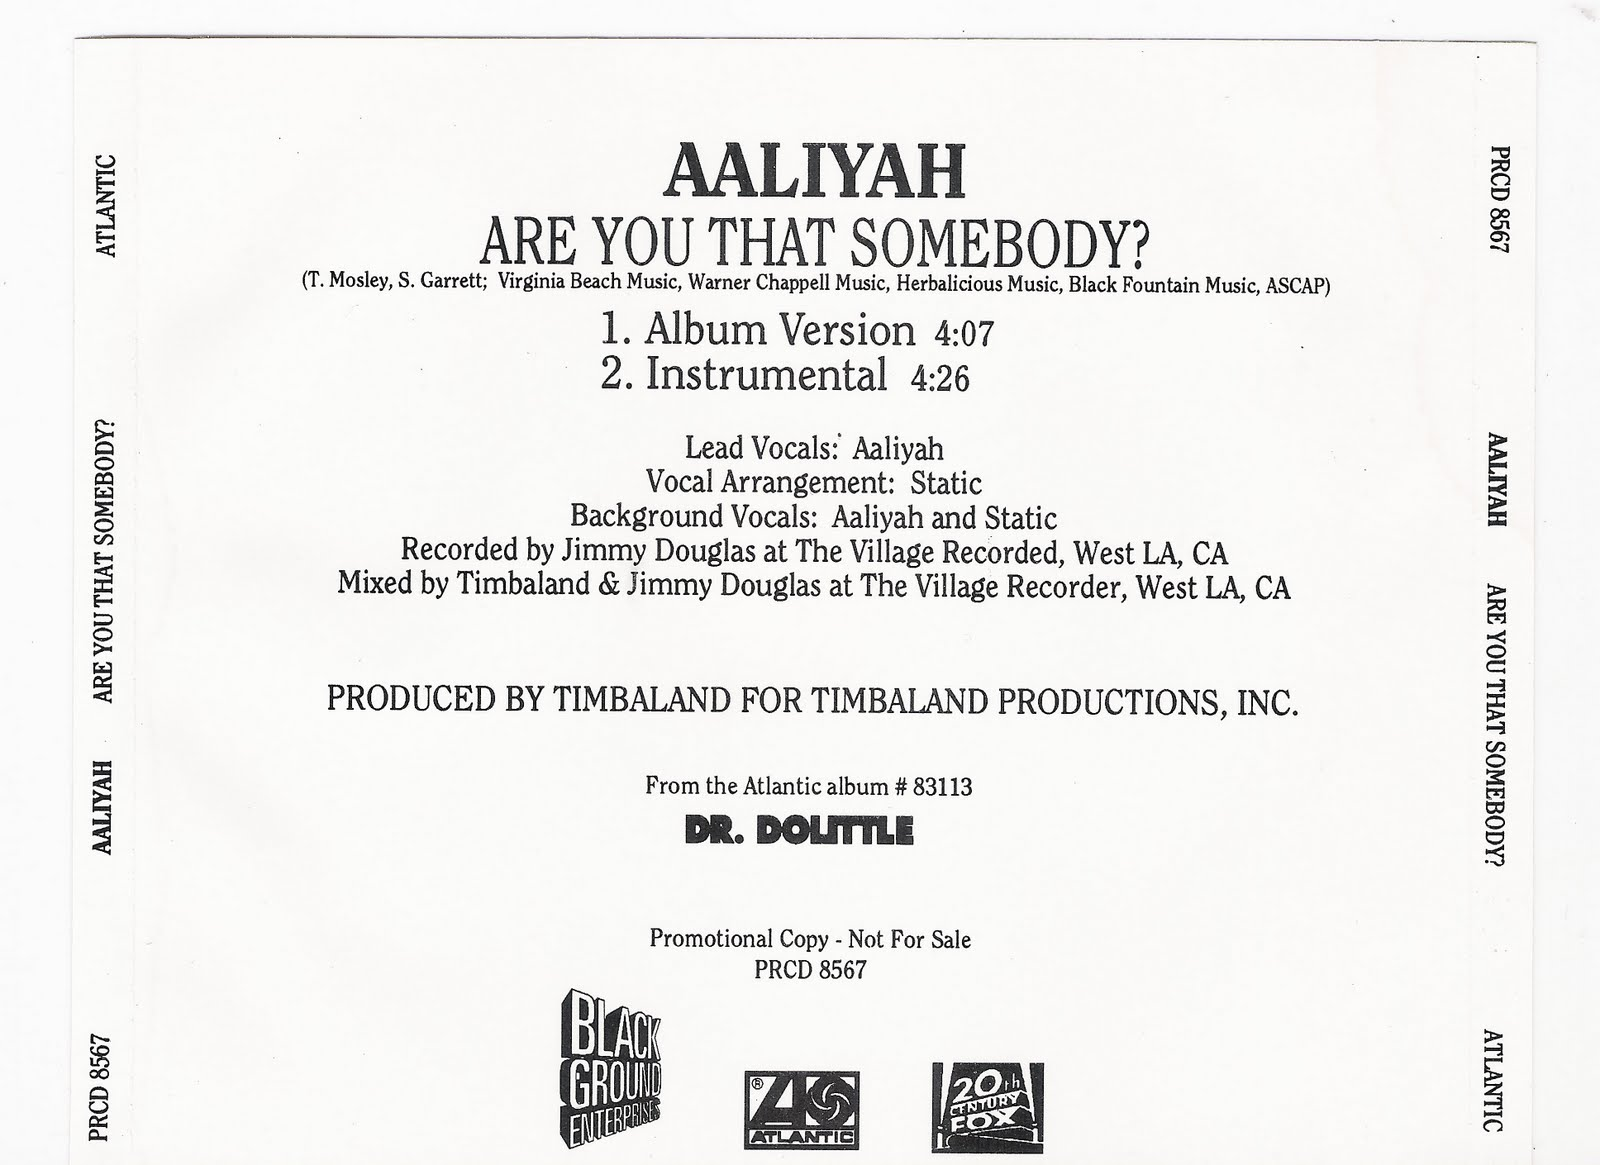 http://3.bp.blogspot.com/-uRqyBYYPP3E/TdVOurlVSGI/AAAAAAAAJ5Y/eglVAyrhumM/s1600/00-aaliyah-are_you_that_somebody-%2528promo_cds%2529-1998-back.jpg